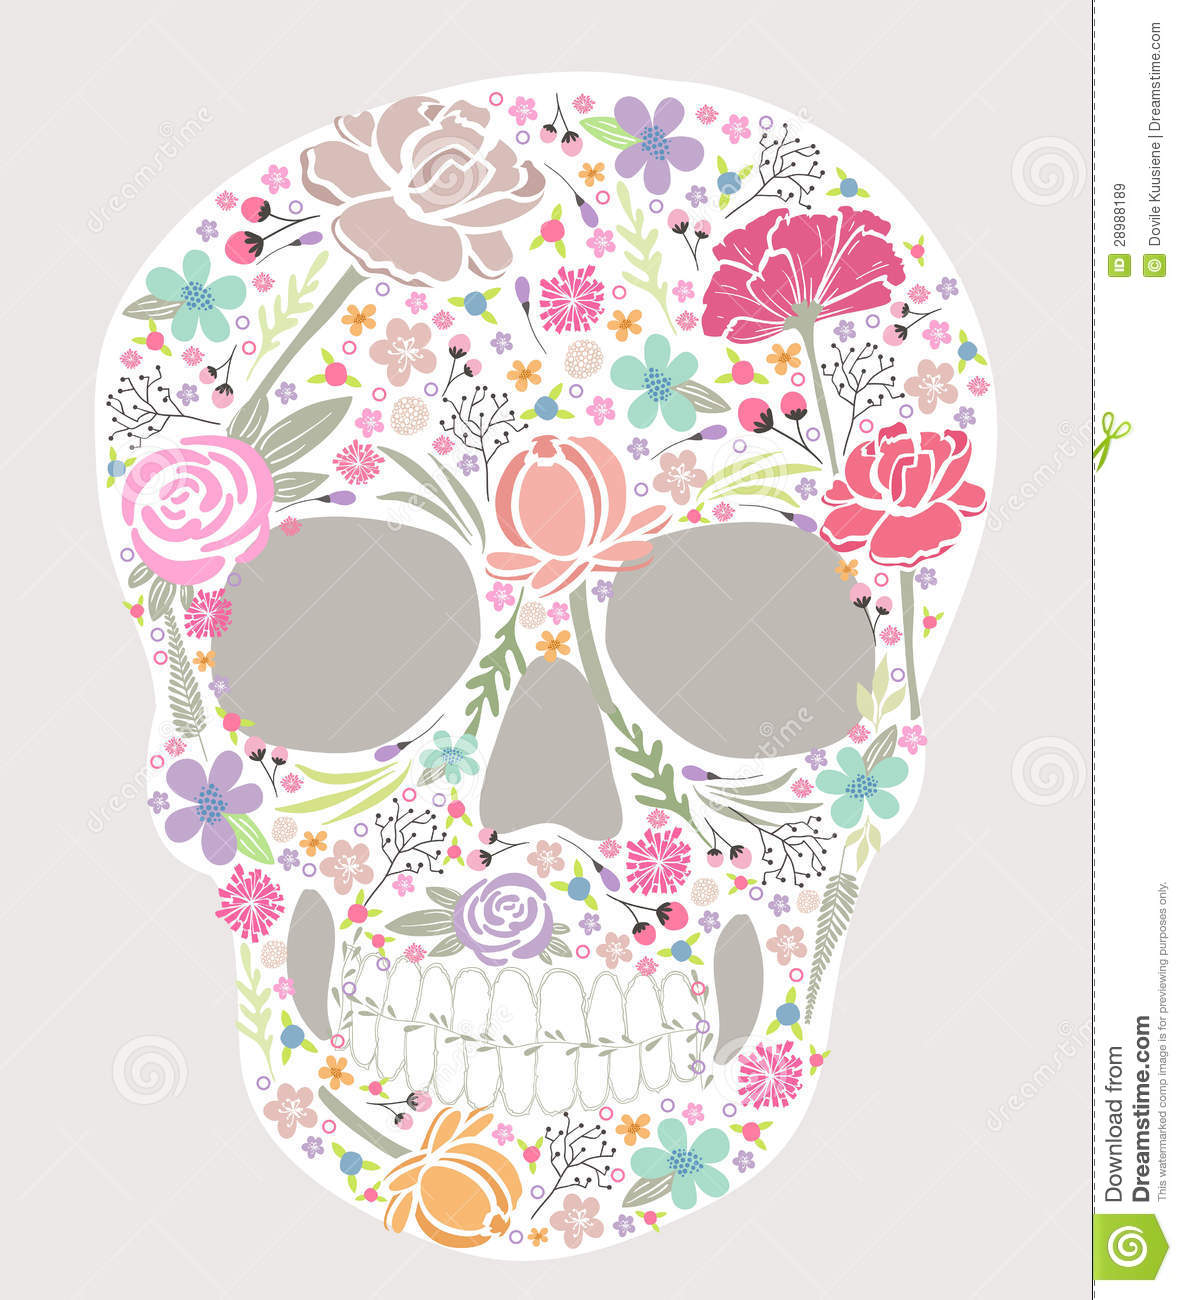 Skull From Flowers Royalty Free Stock Image